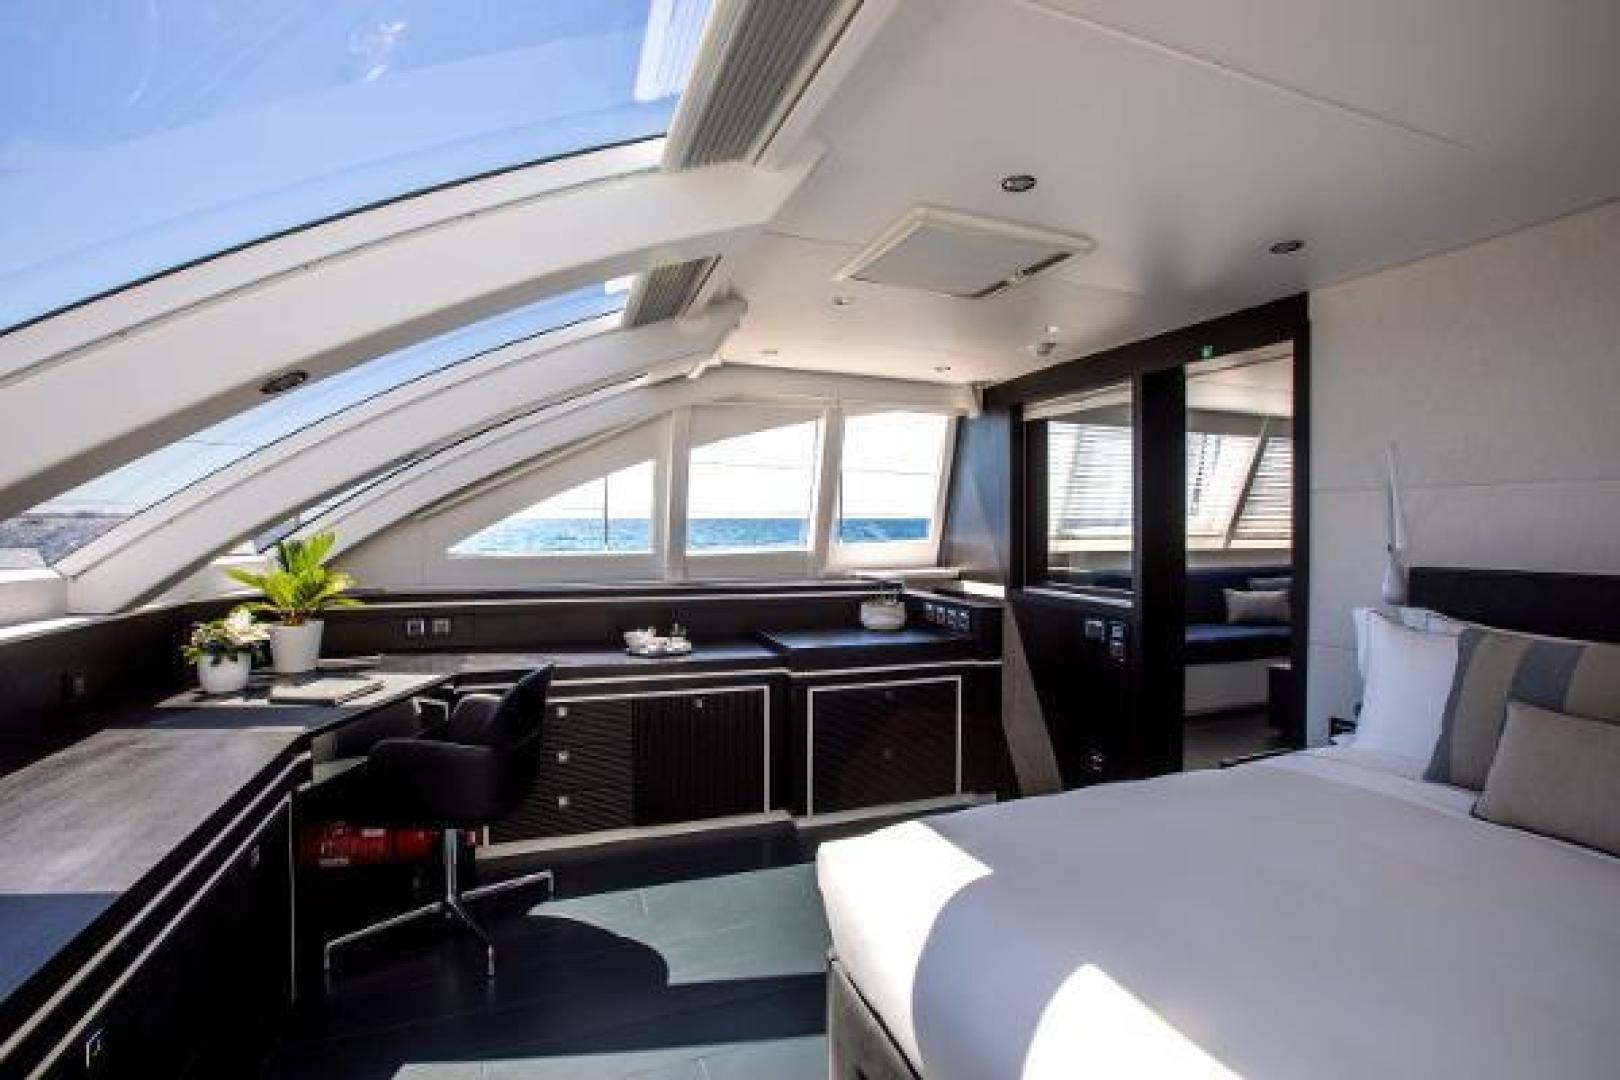 Catamaran-Blue Coast Yachts  2011-CARTOUCHE Antigua & Barbuda-1296552 | Thumbnail